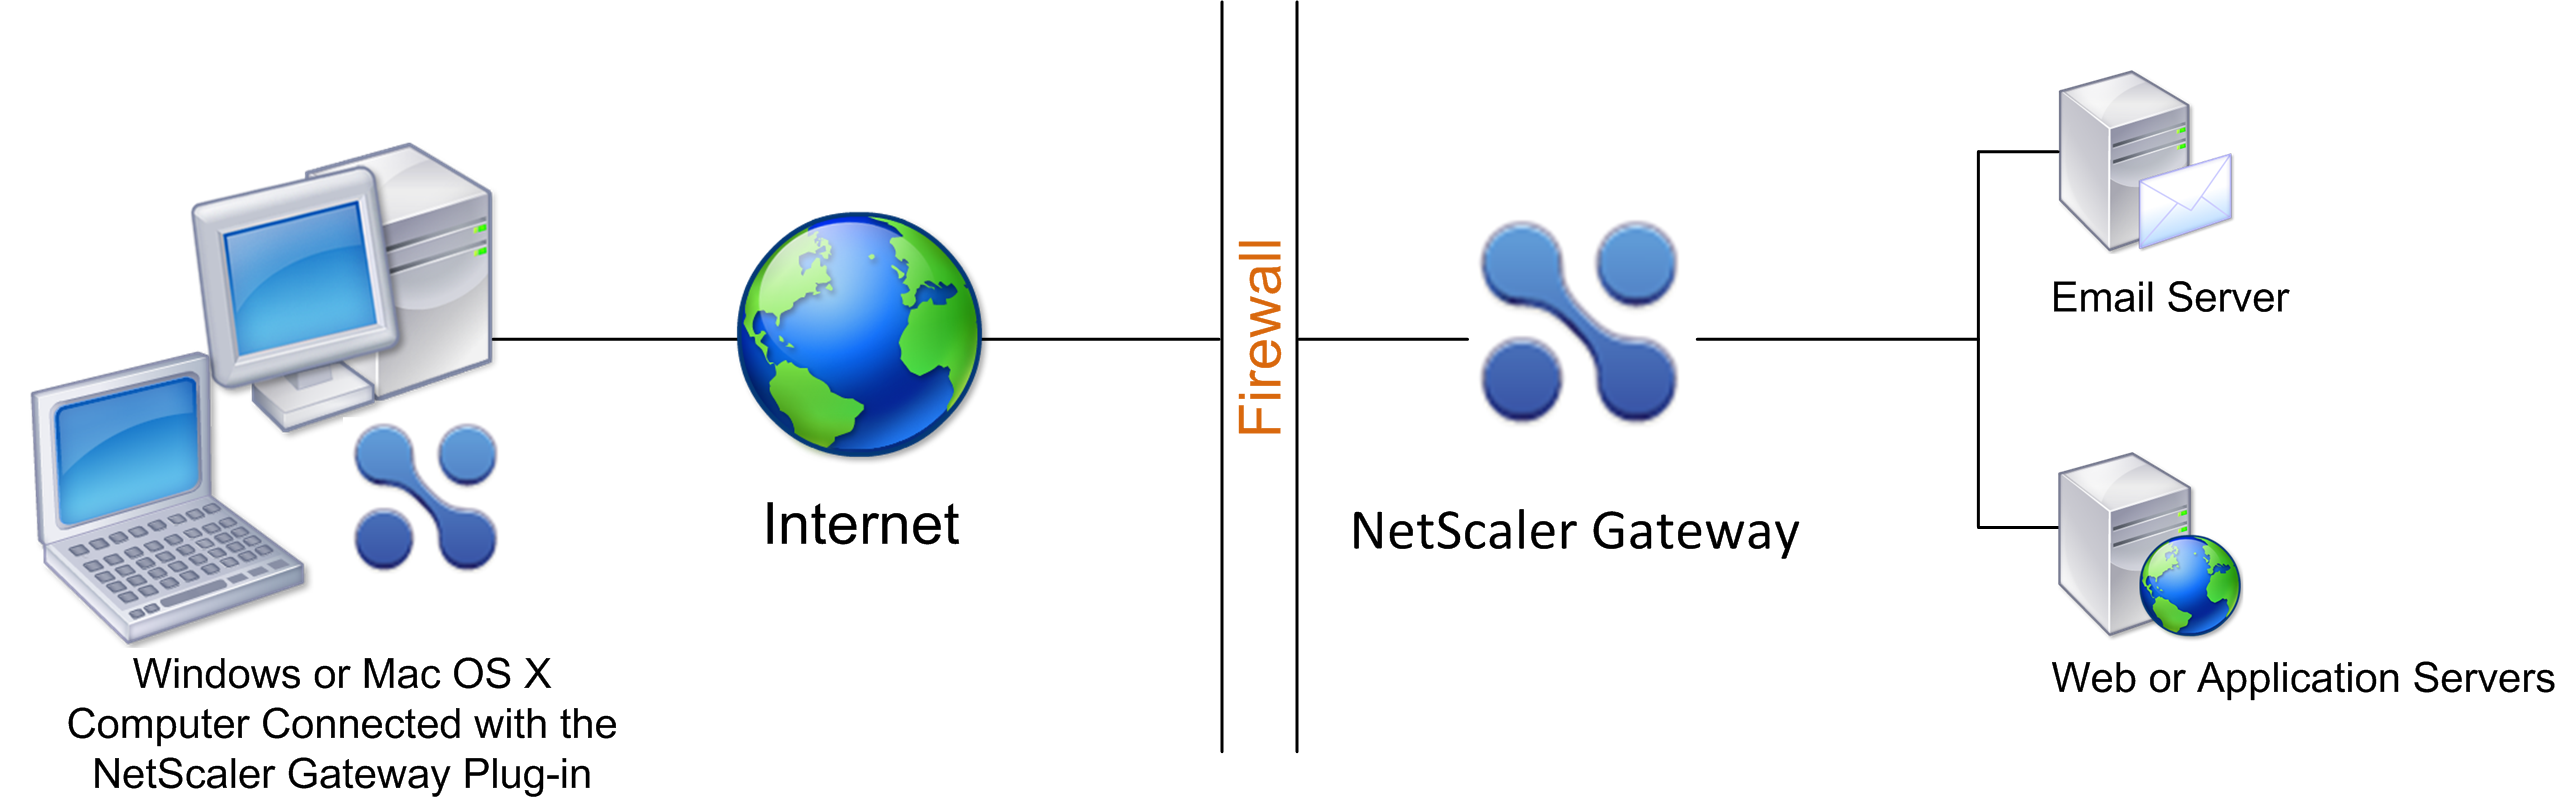 Deploy NetScaler Gateway in Secure Network